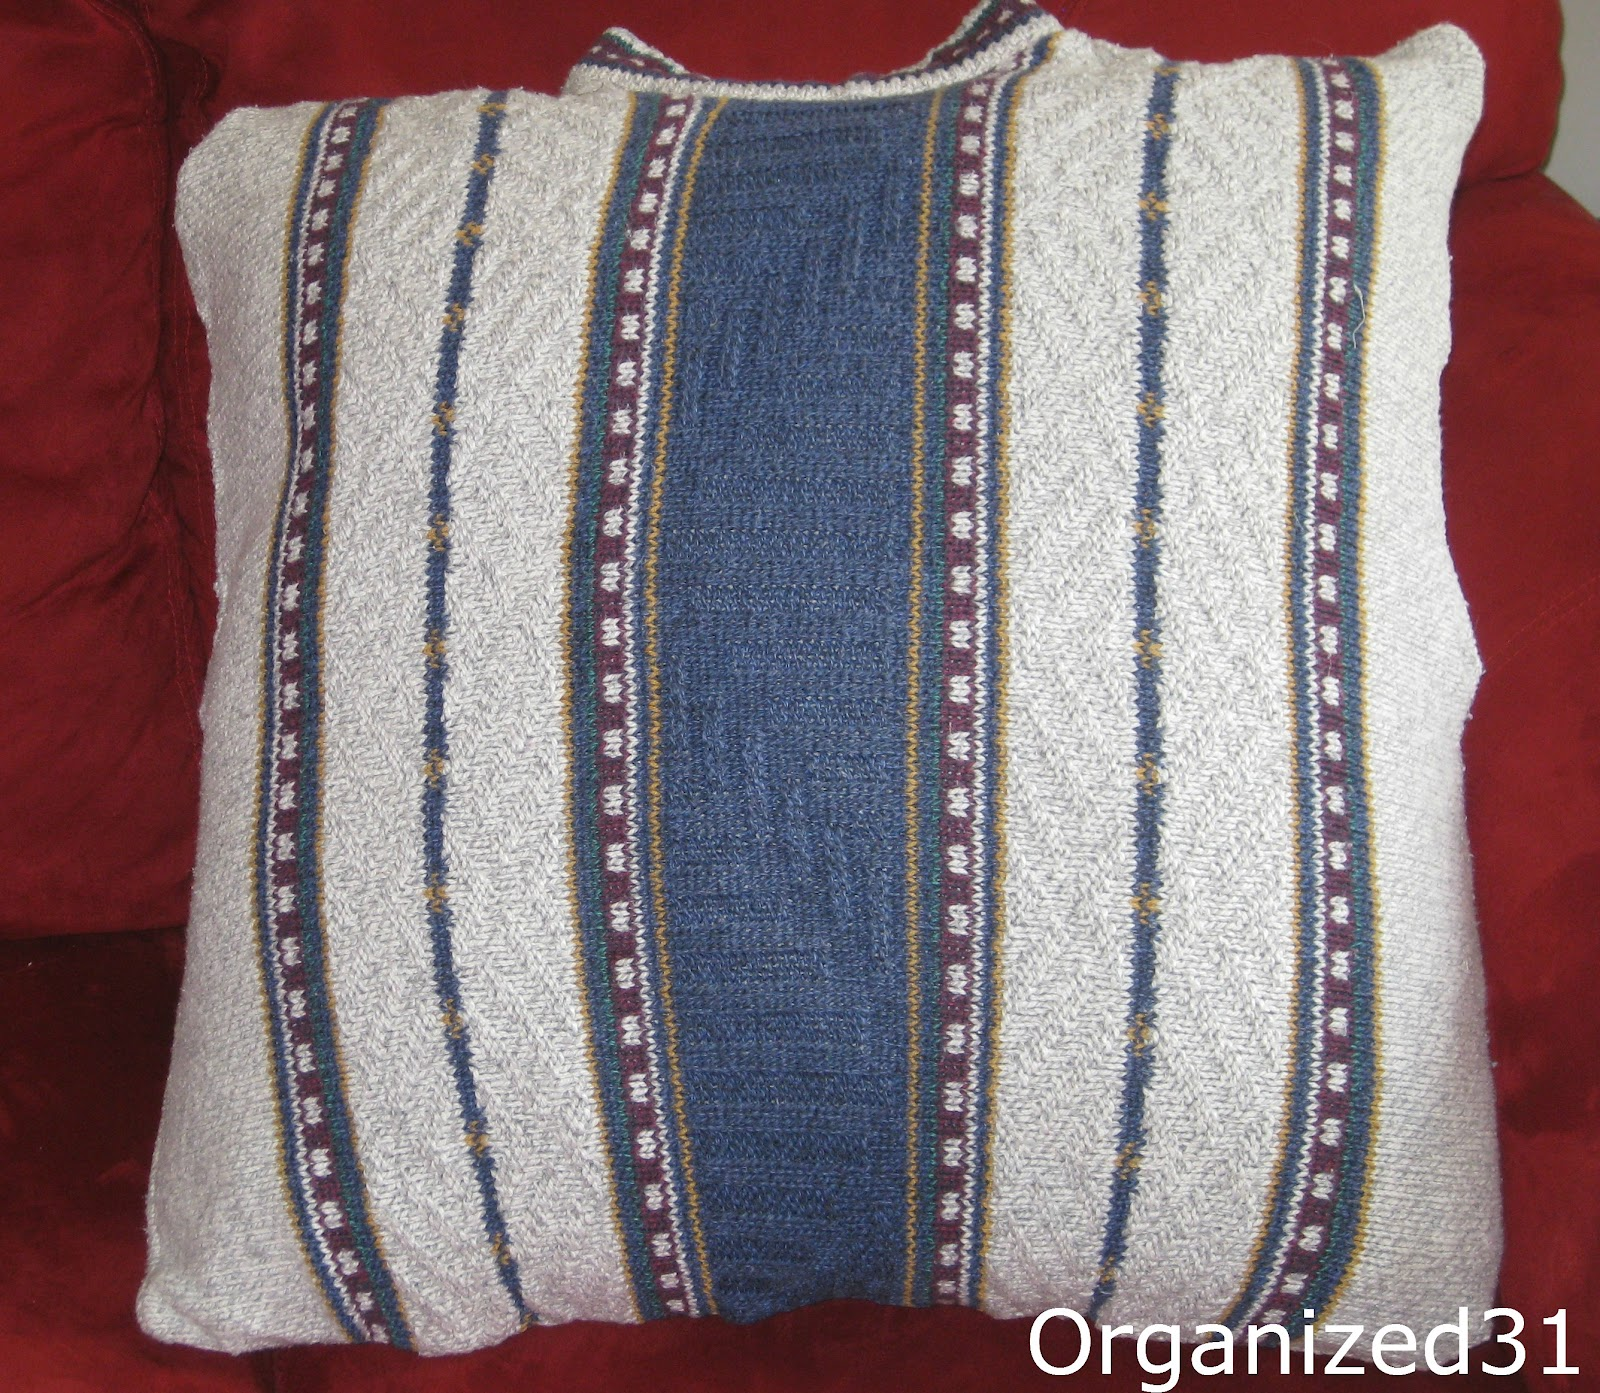 Organized 31: Cozy Repurposed Sweater Pillows